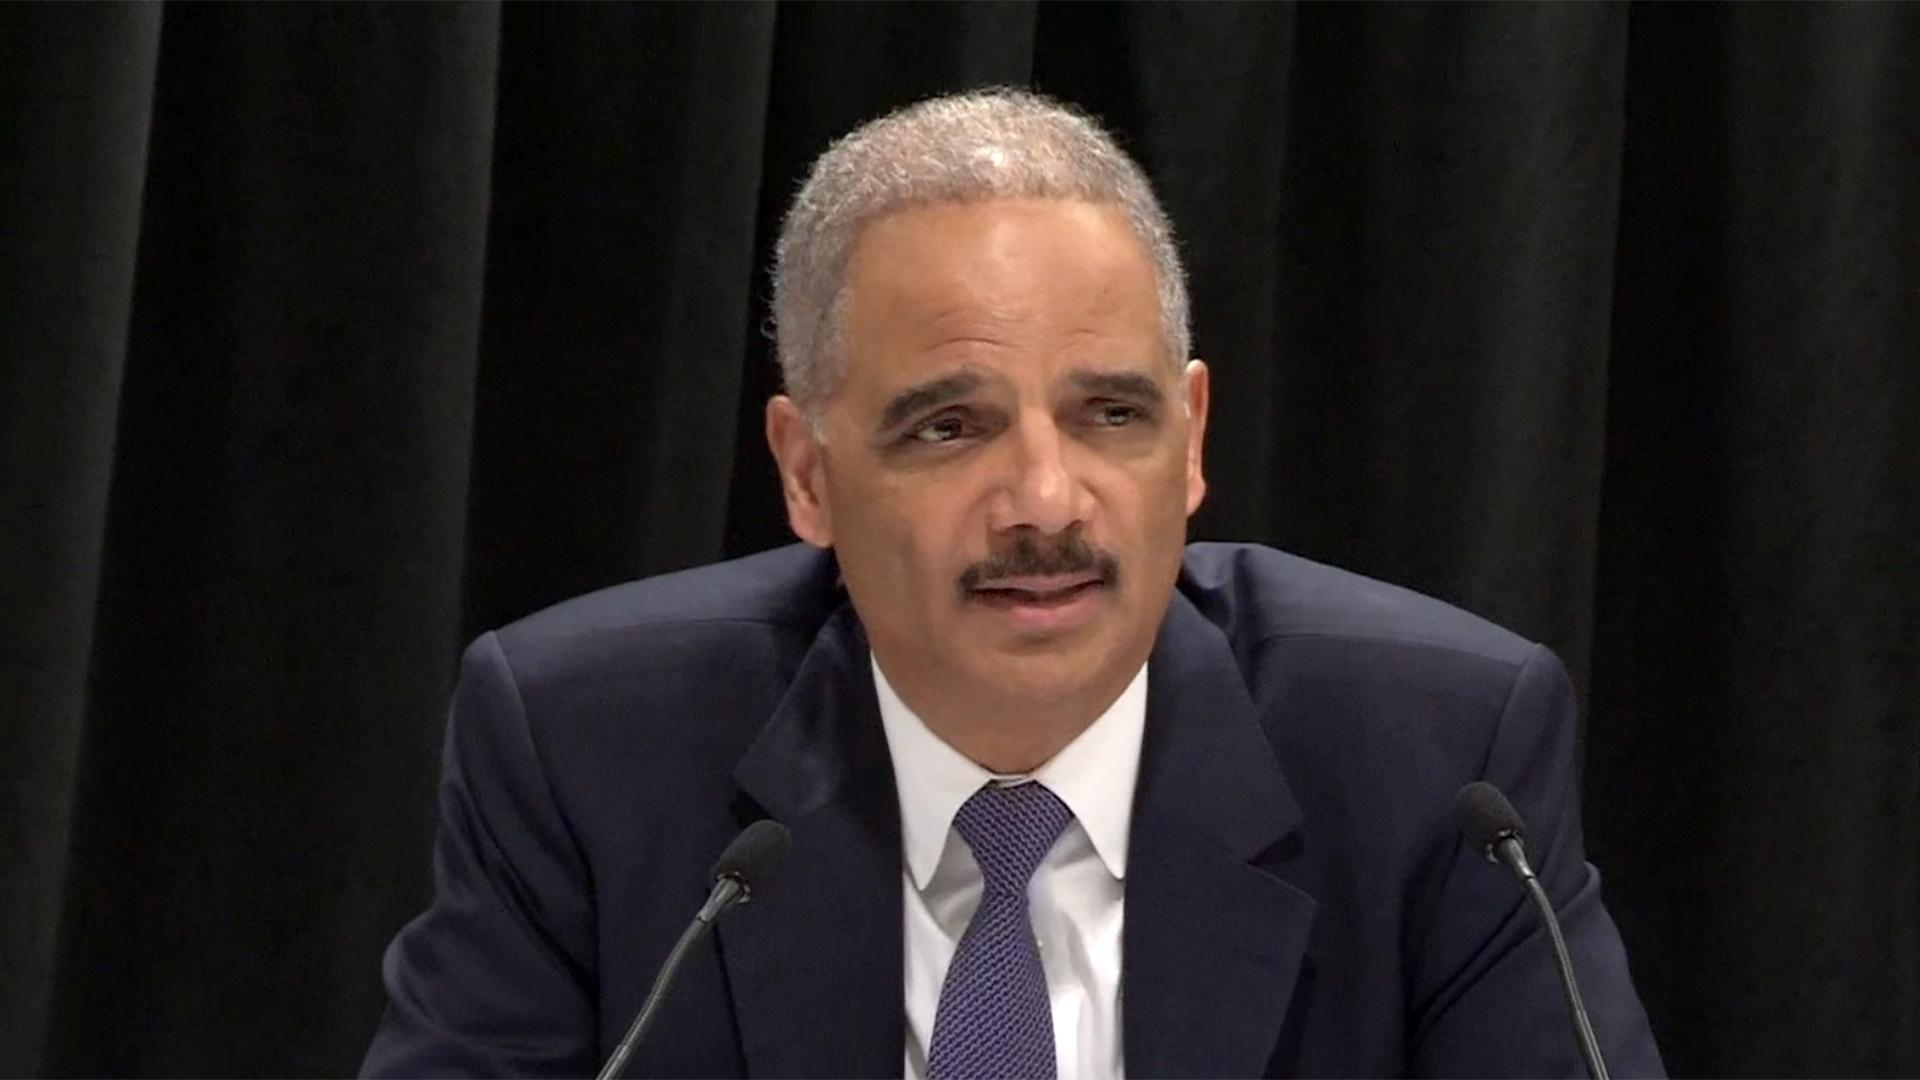 eric holder mlk scholarship recipients soul issue pbs